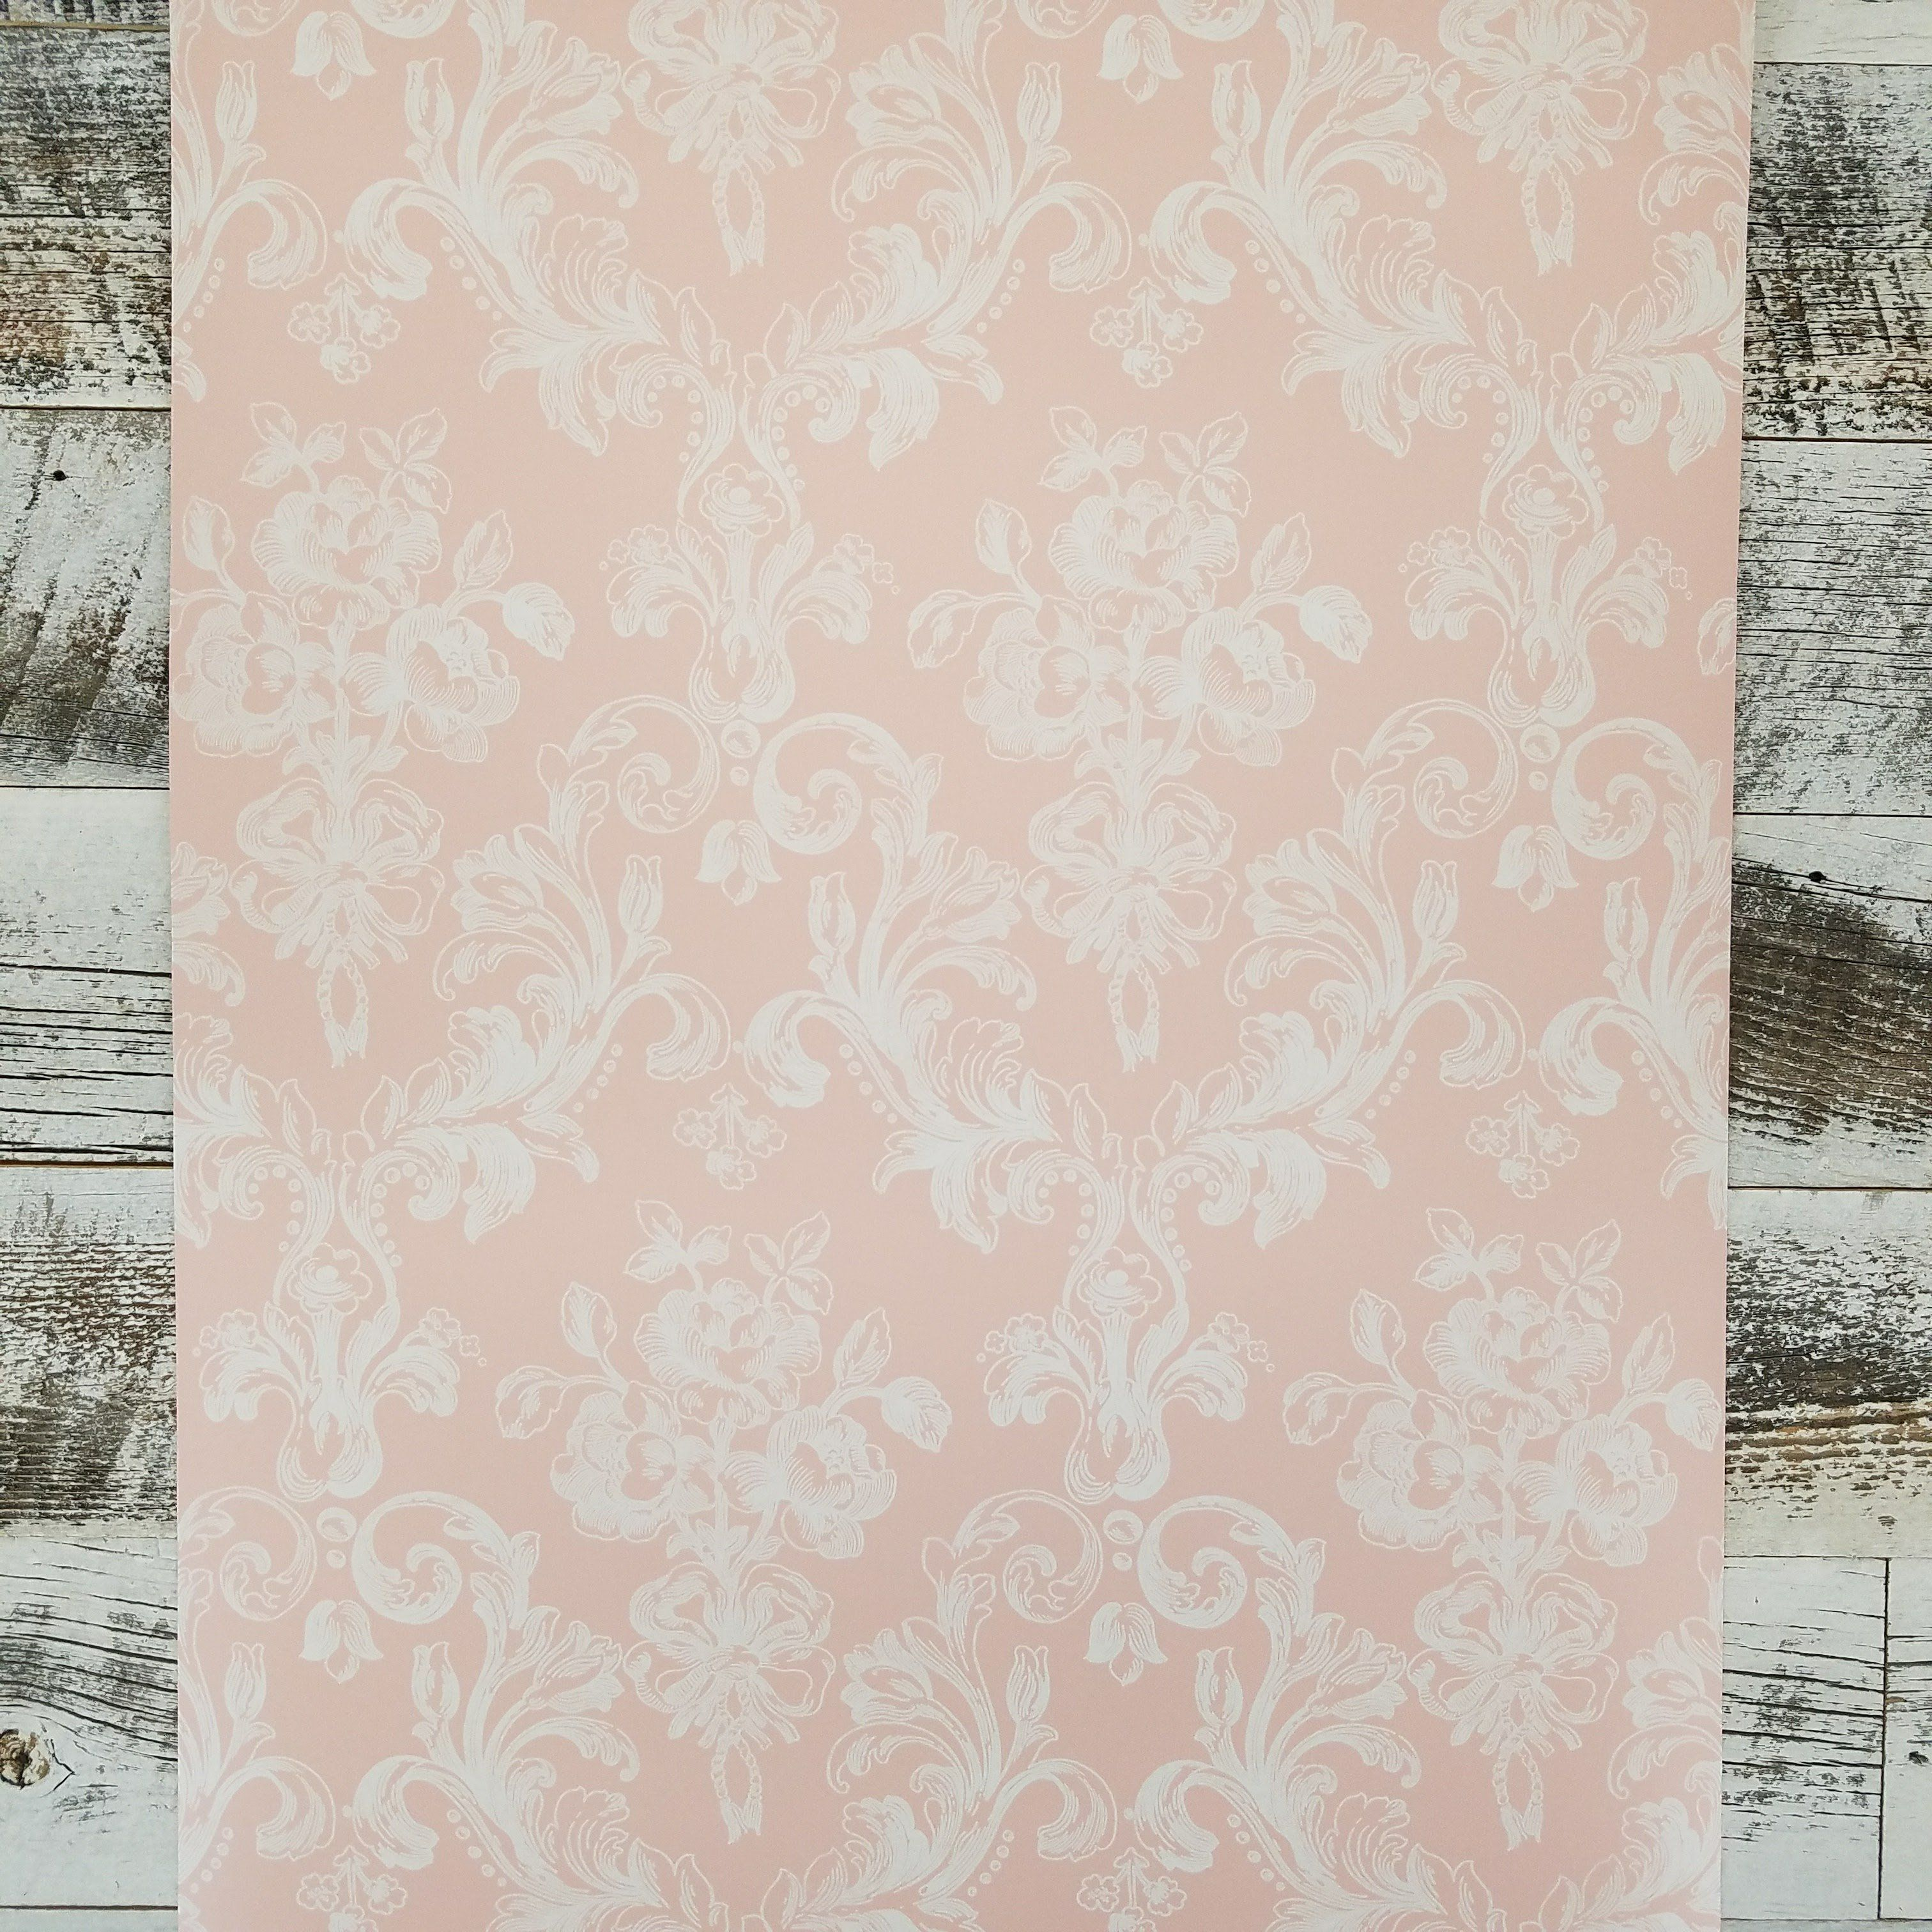 Victorian Damask in White on Pink GC29824 Wallpaper Pink